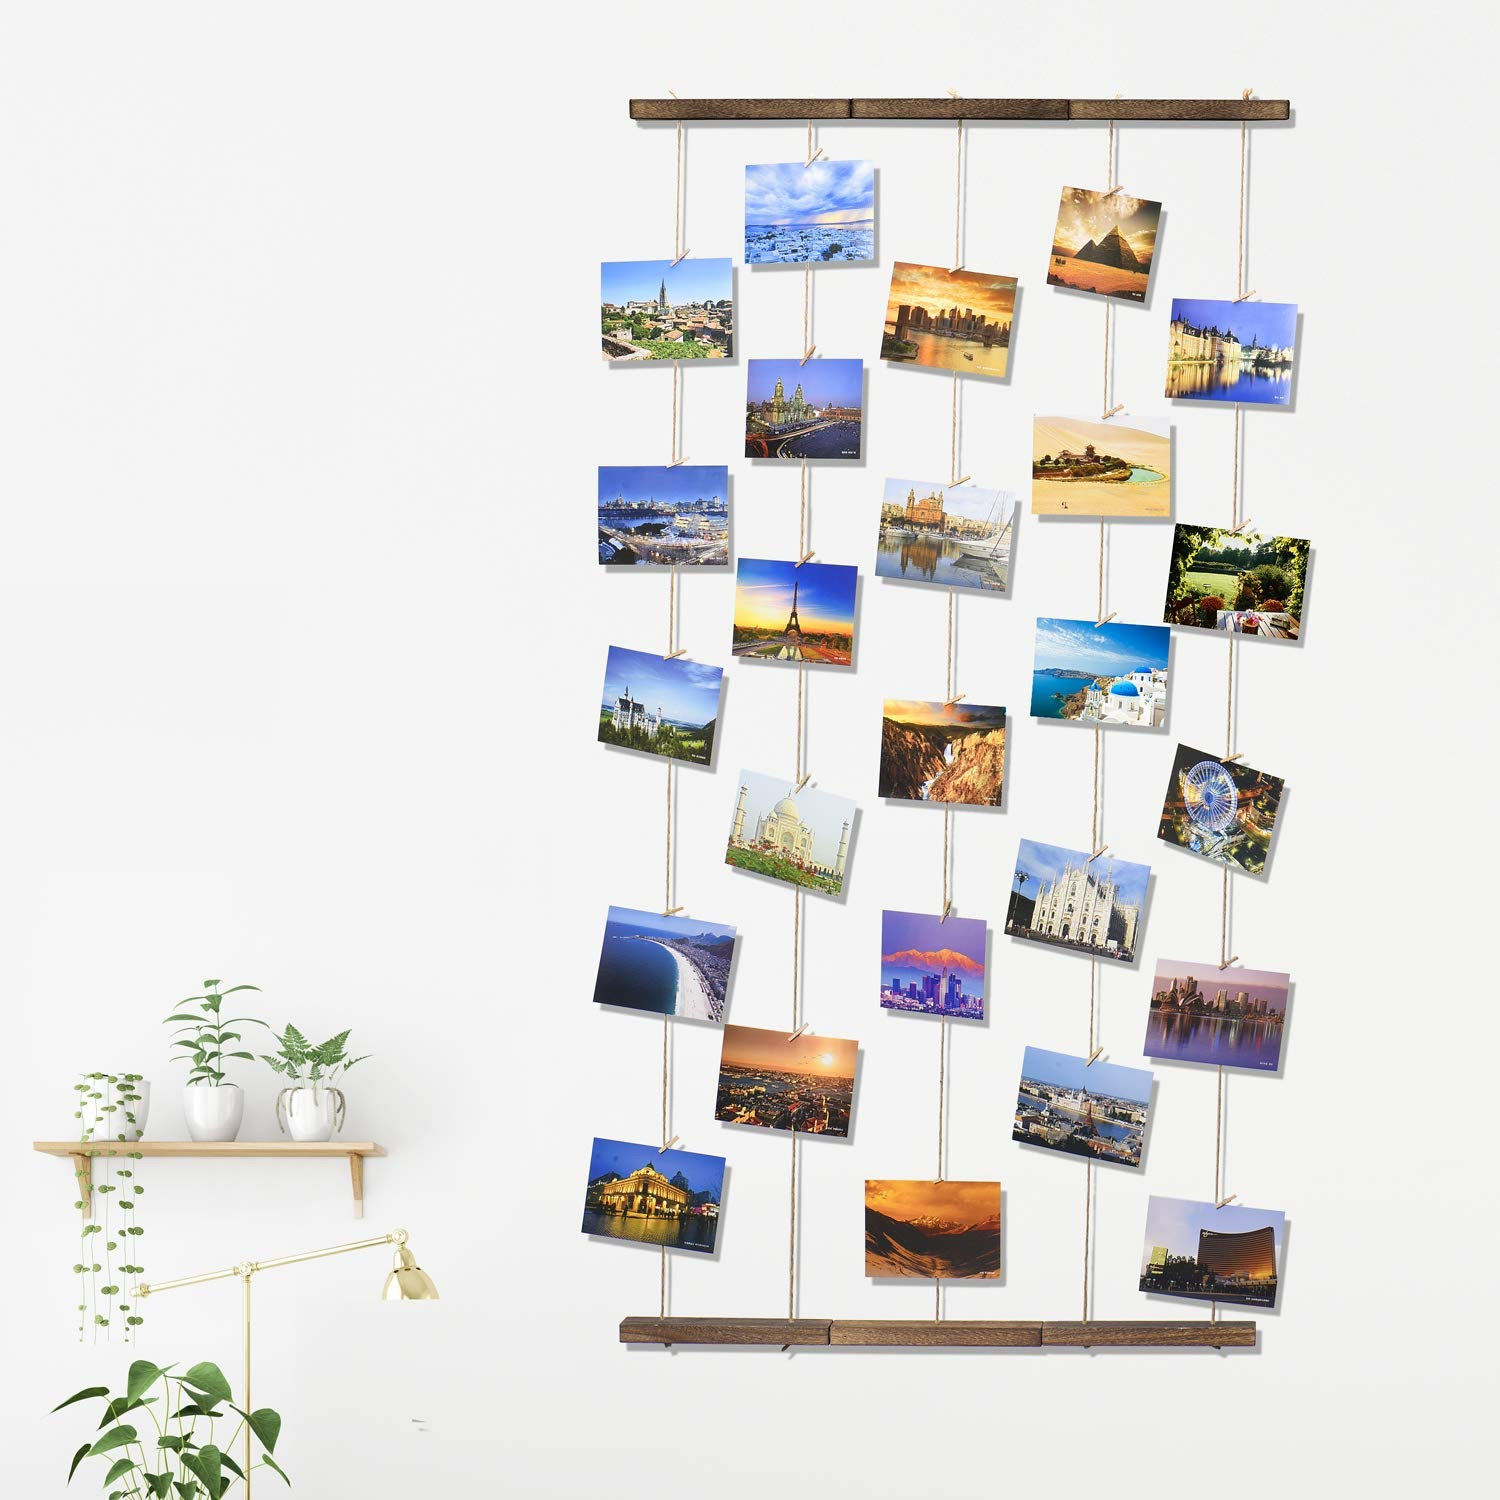 TWING Hanging Photo Display Picture Frames Collage